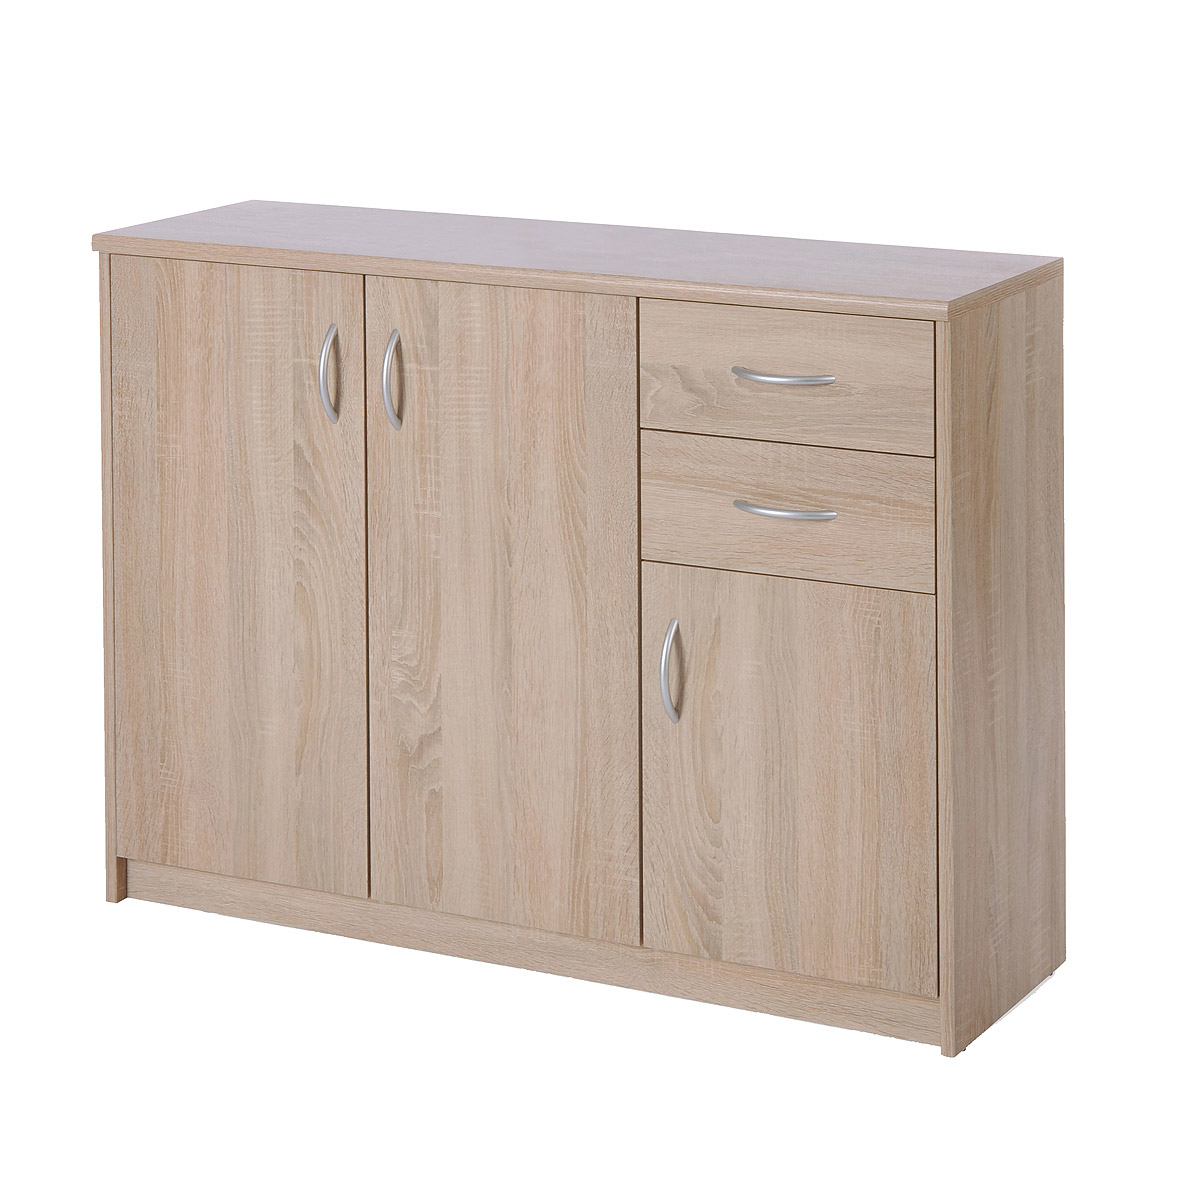 sideboard kiel 2 anrichte kommode sonoma eiche mit 3 t ren und 2 schubk sten eur 67 95. Black Bedroom Furniture Sets. Home Design Ideas